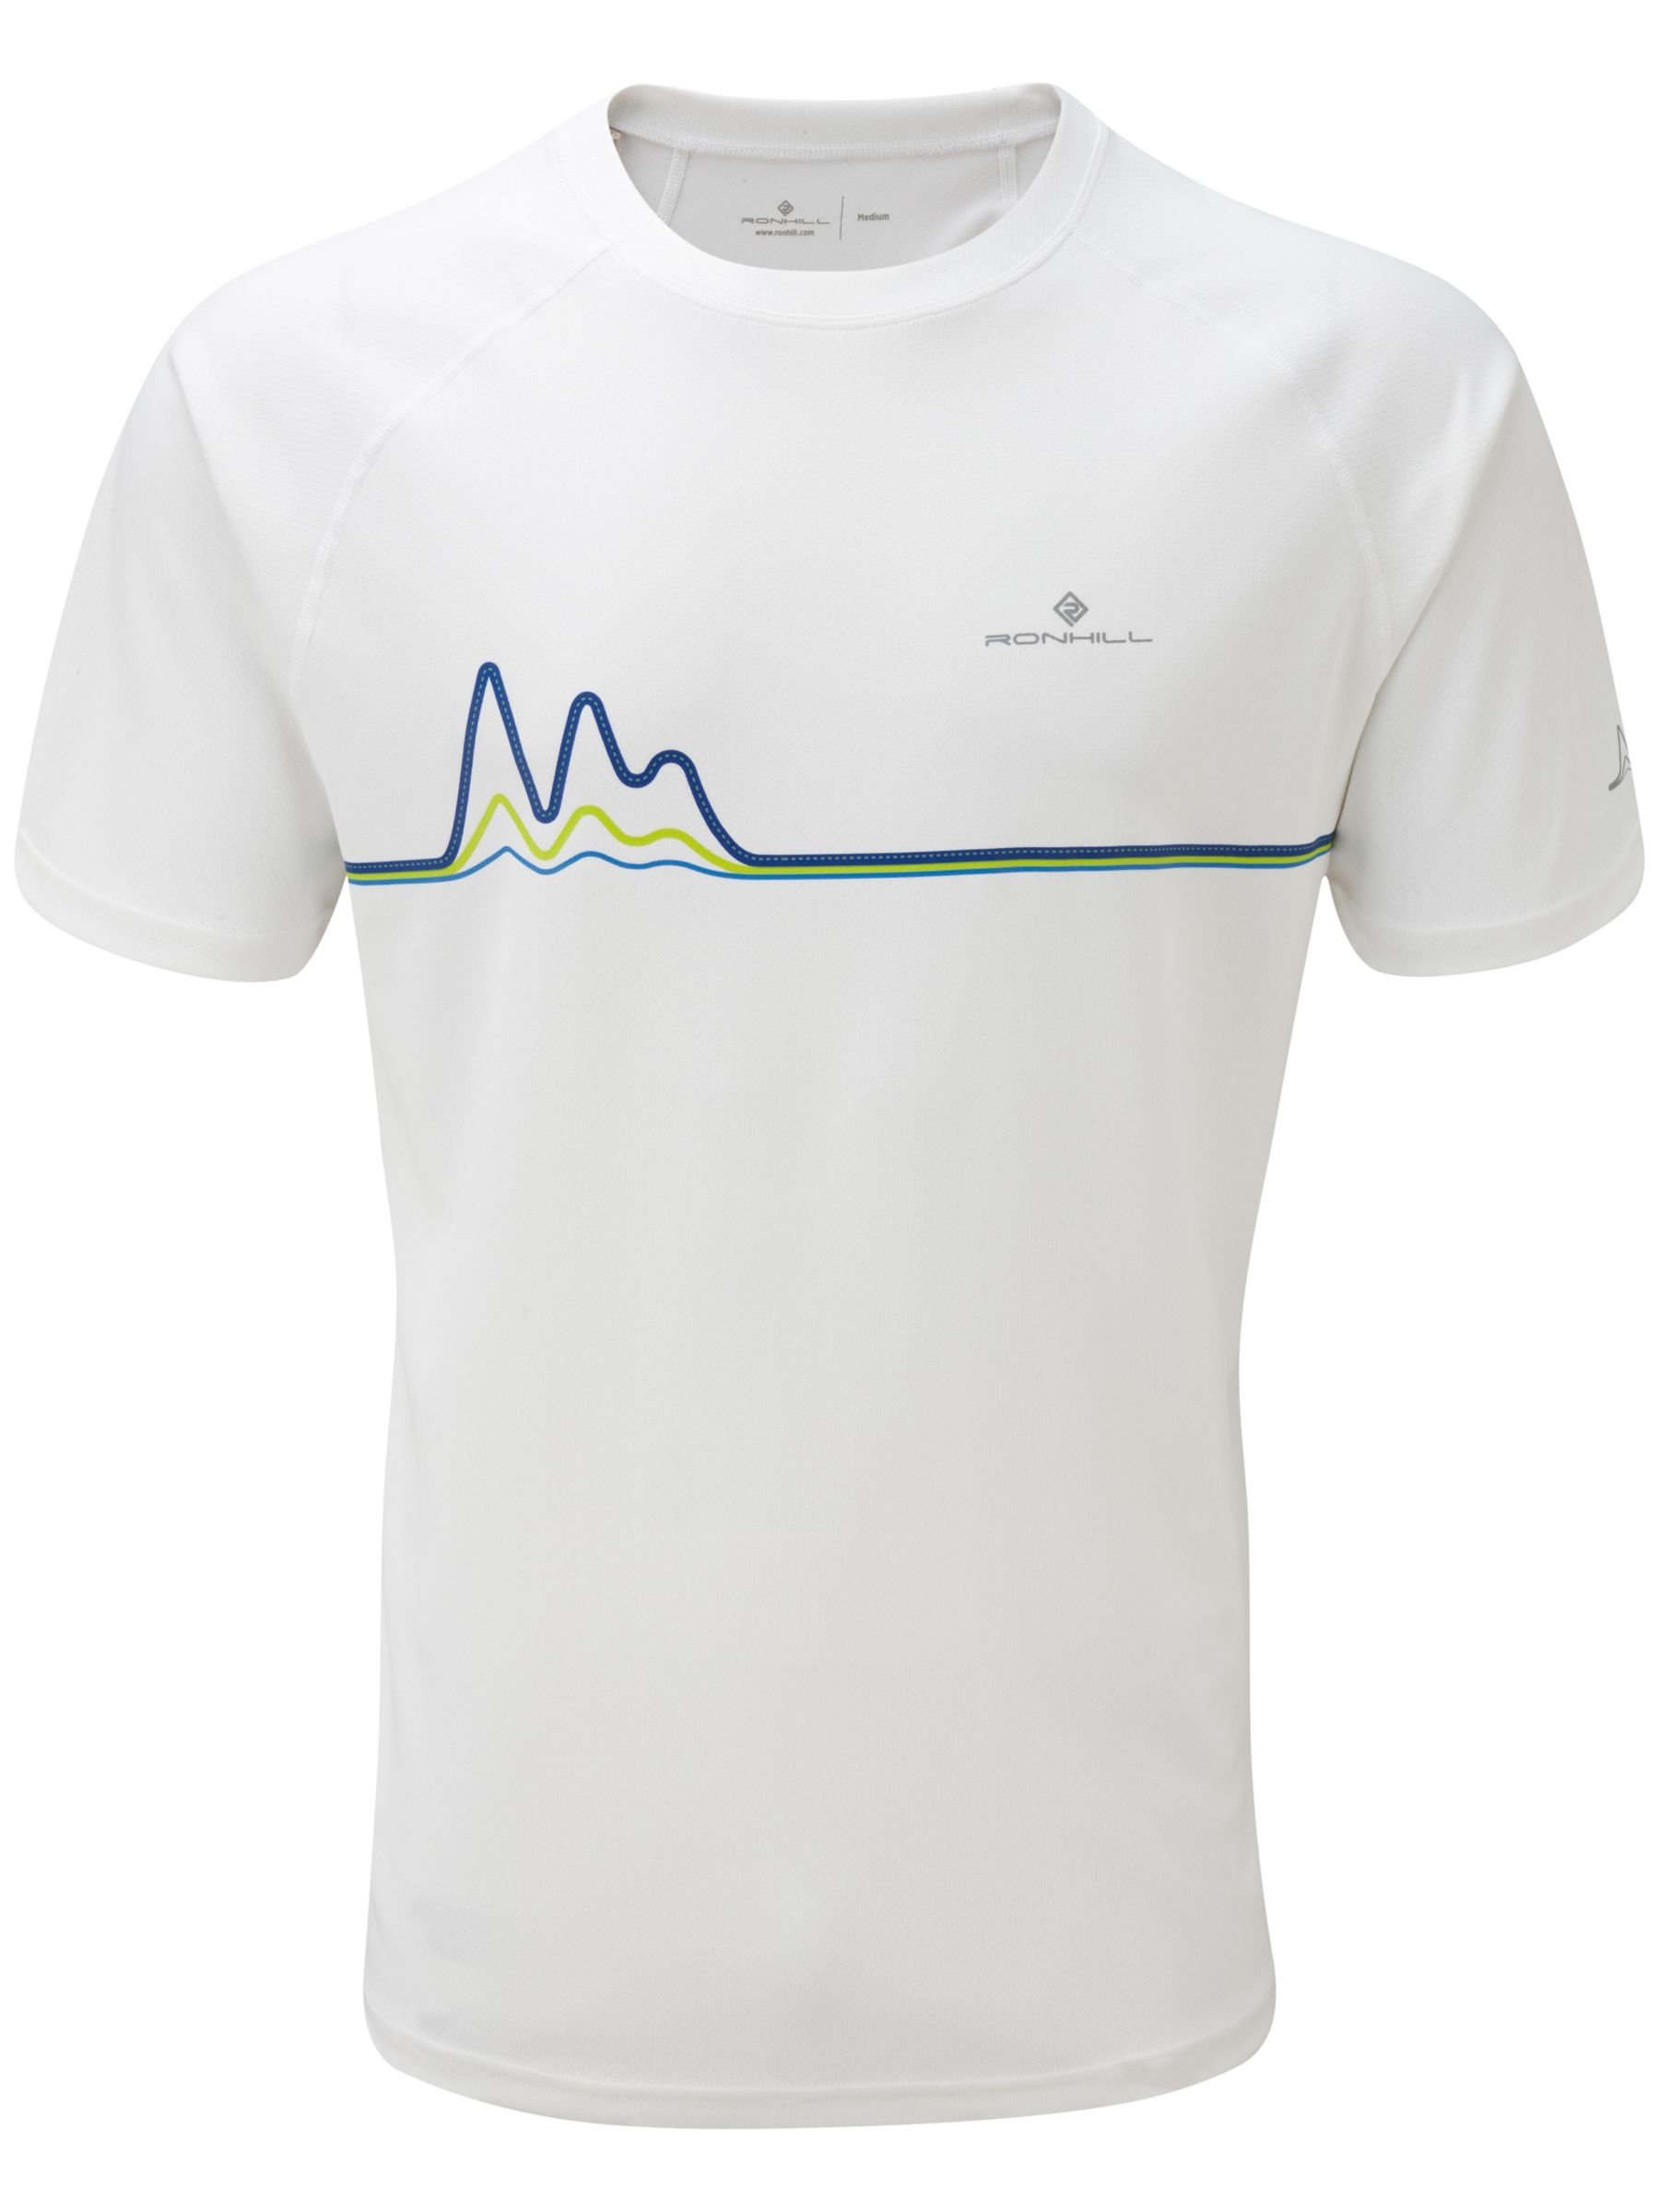 Ronhill Trail Vapourlite Short Sleeve Graphic T-Shirt, White